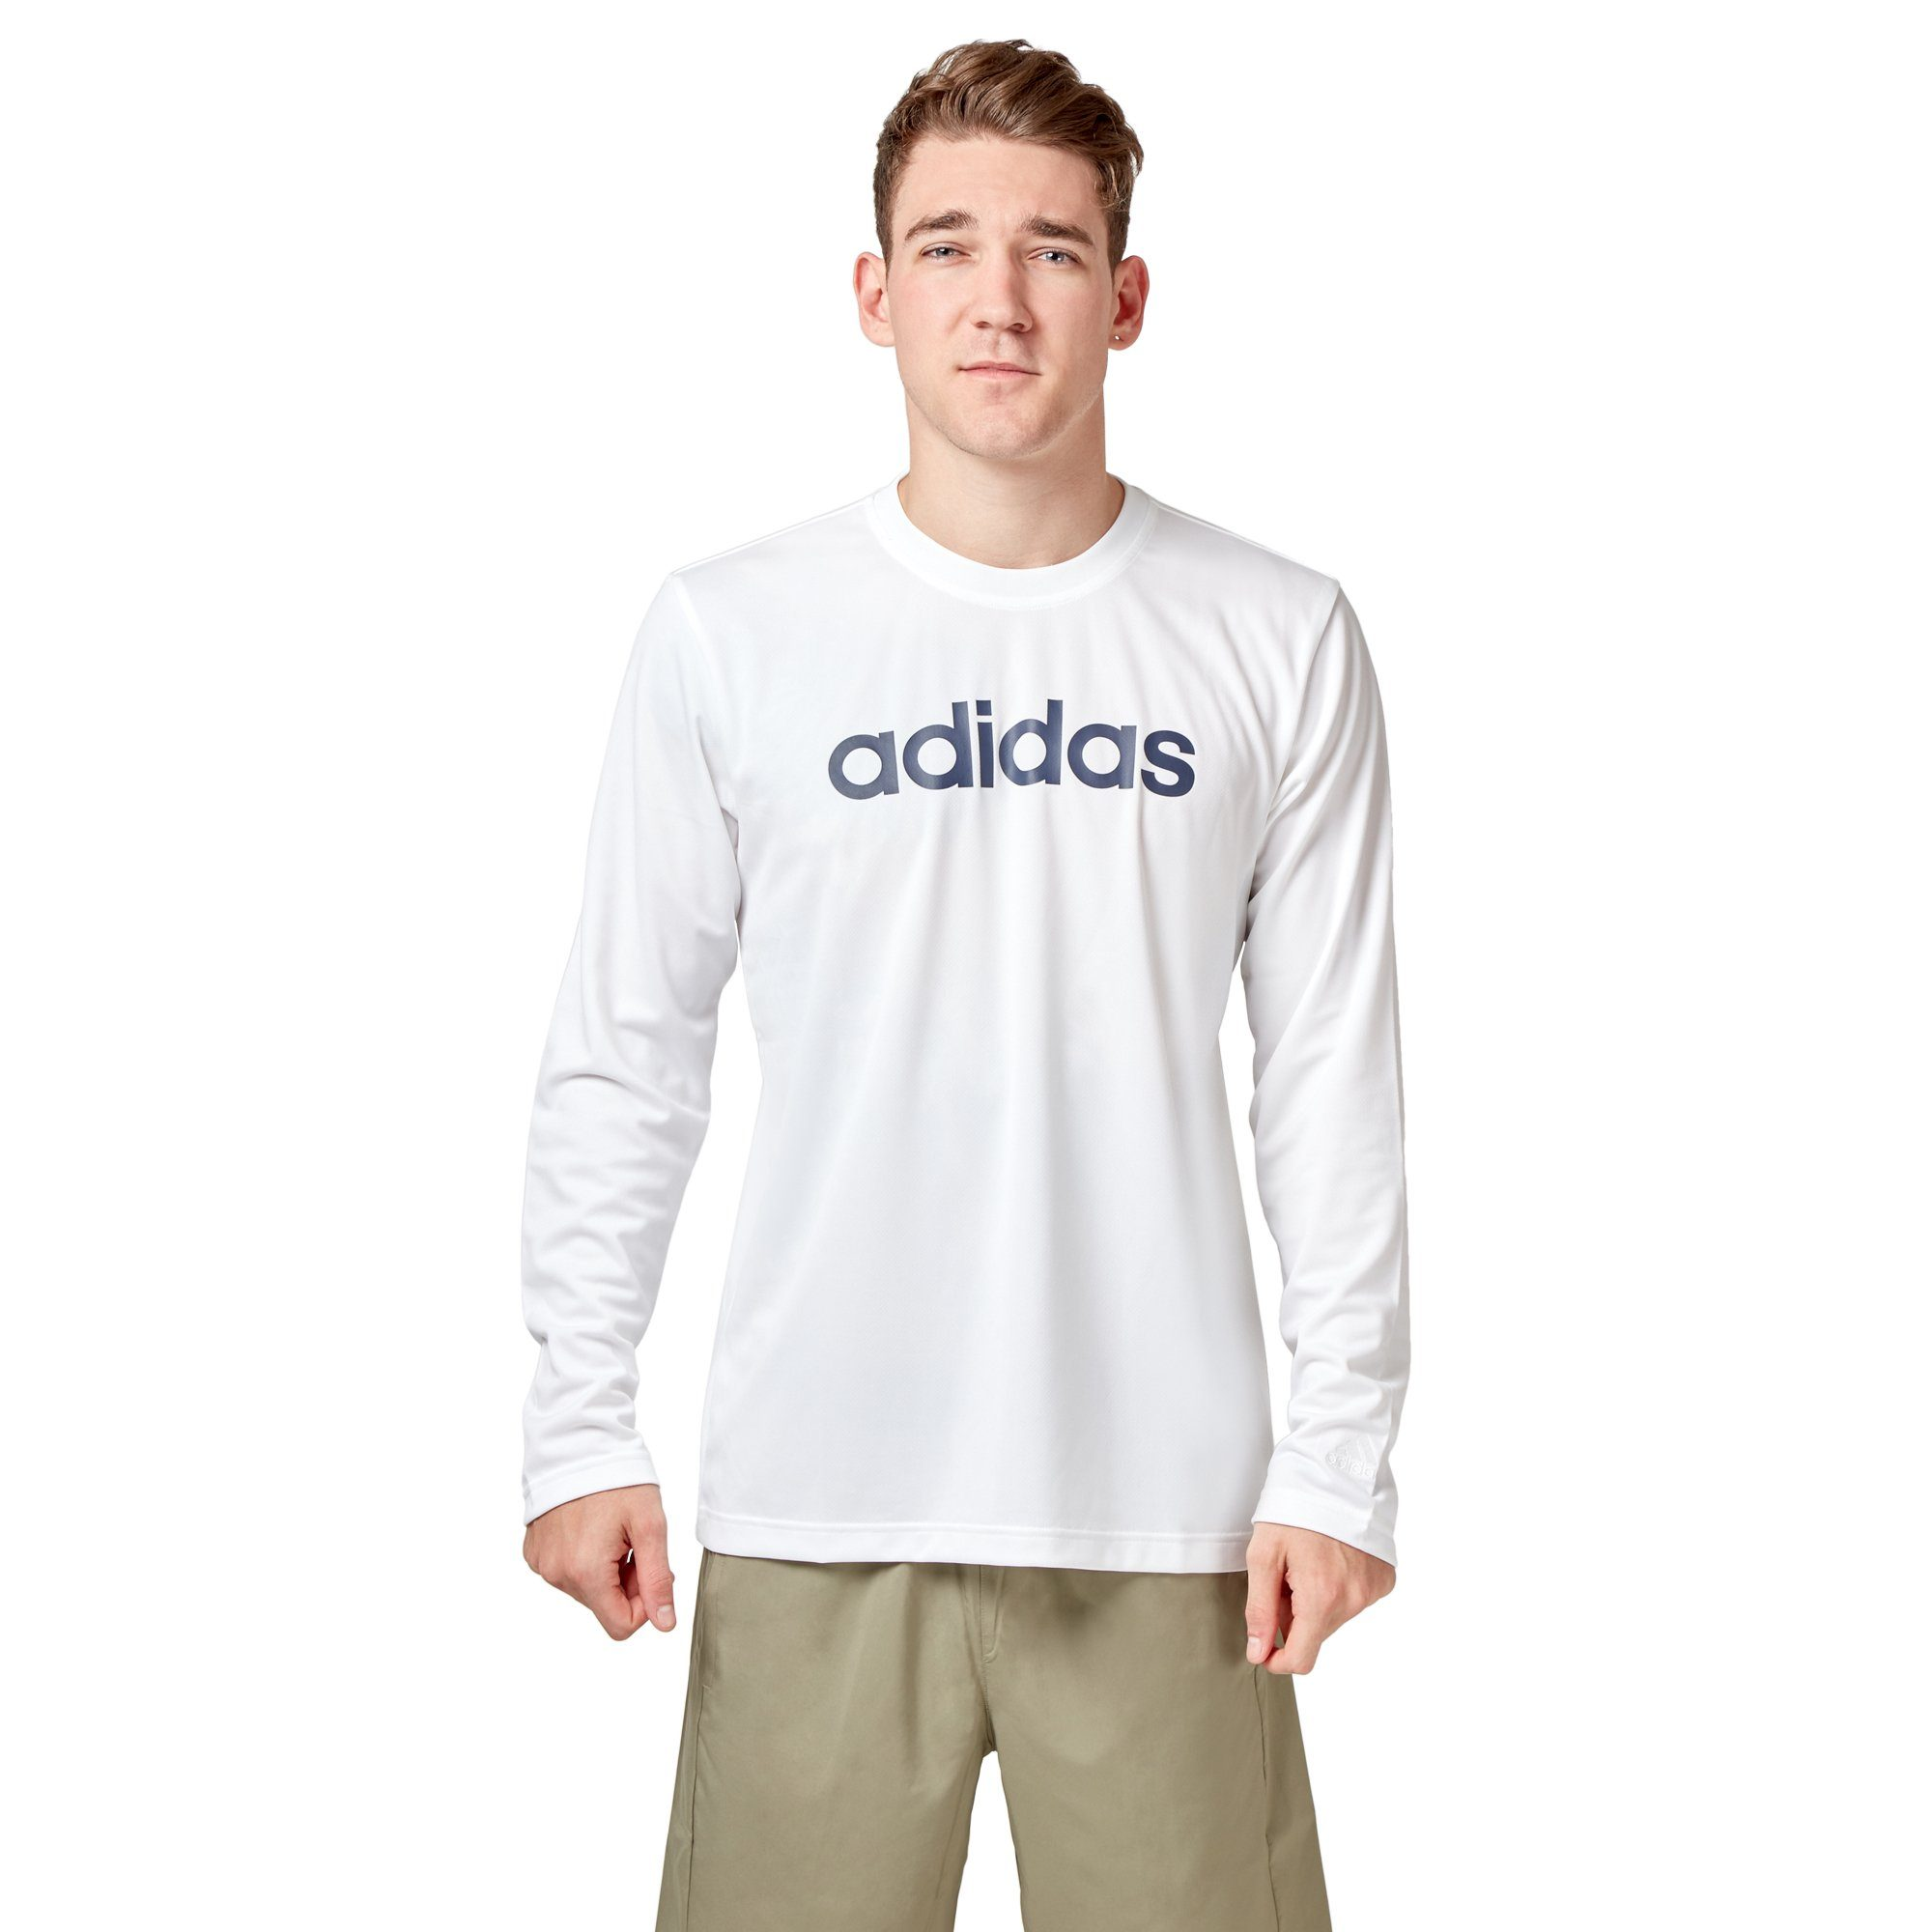 Adidas Men's Logo Long Sleeve Tee - White SportsPower Geelong